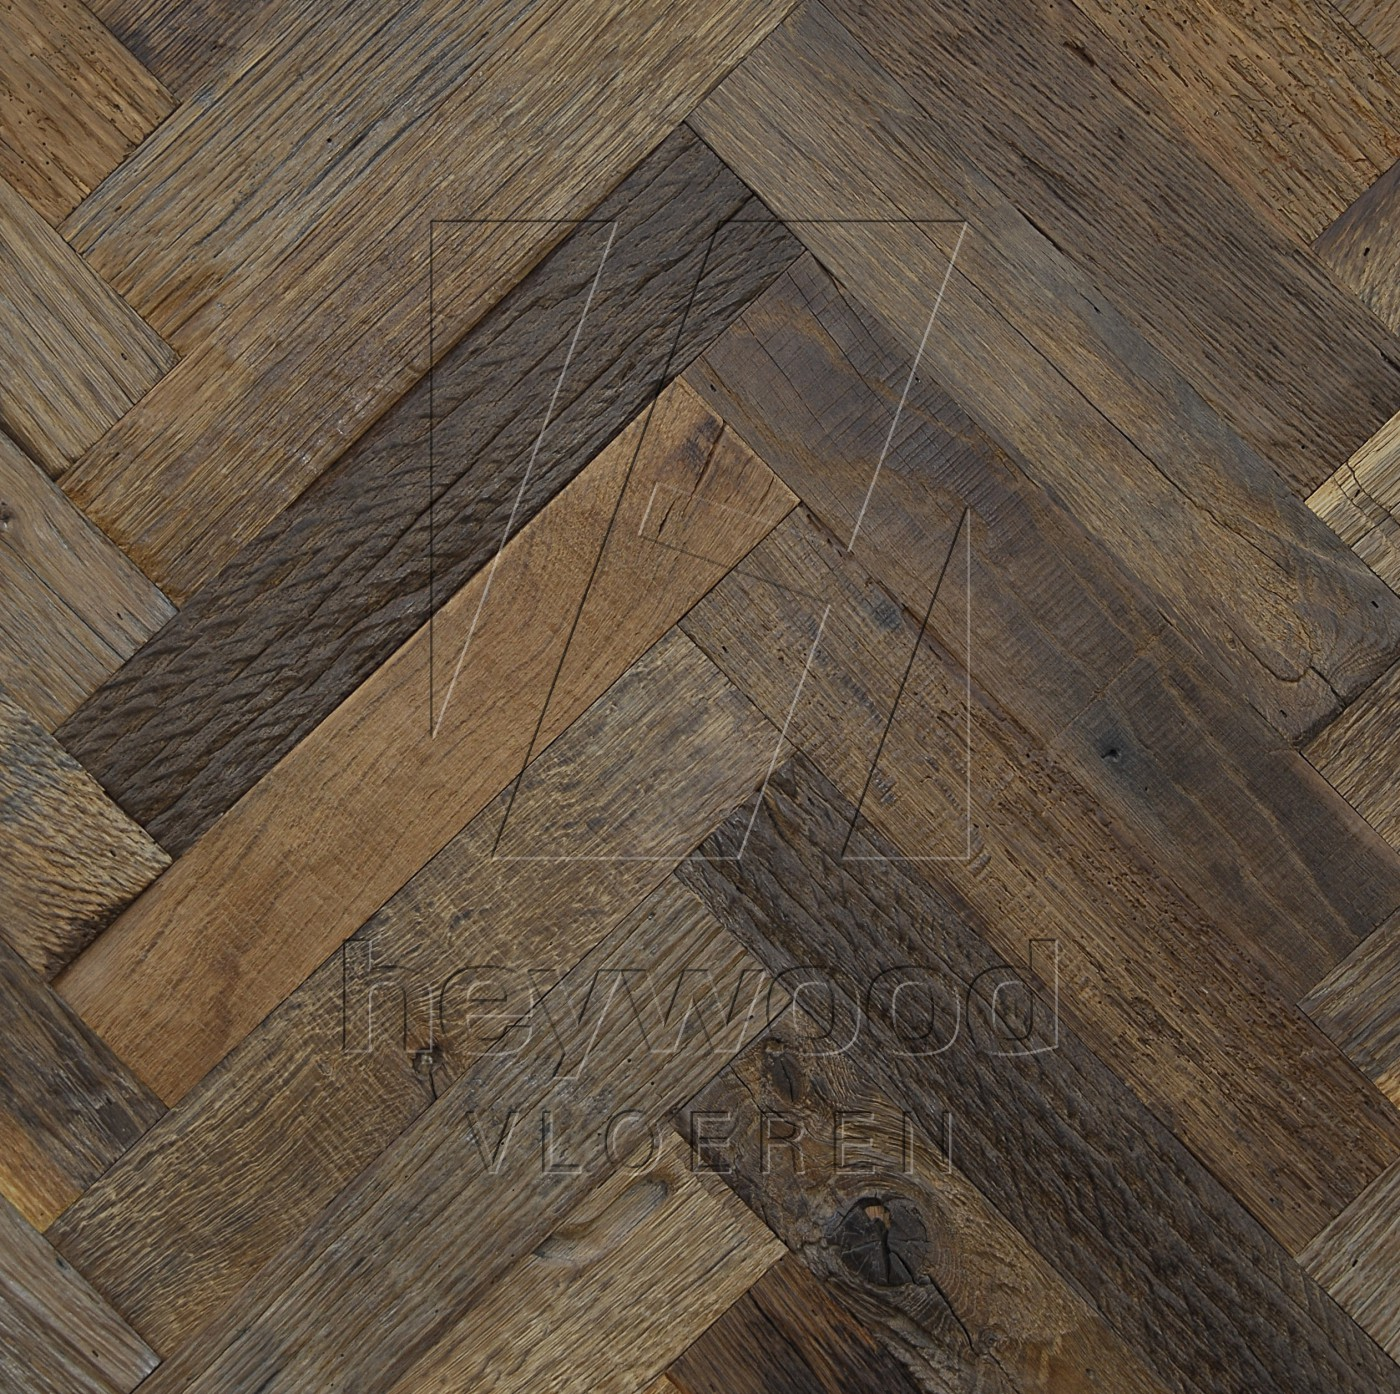 Cotswolds Reclaimed Oak in Herringbone of Pattern & Panel Floors